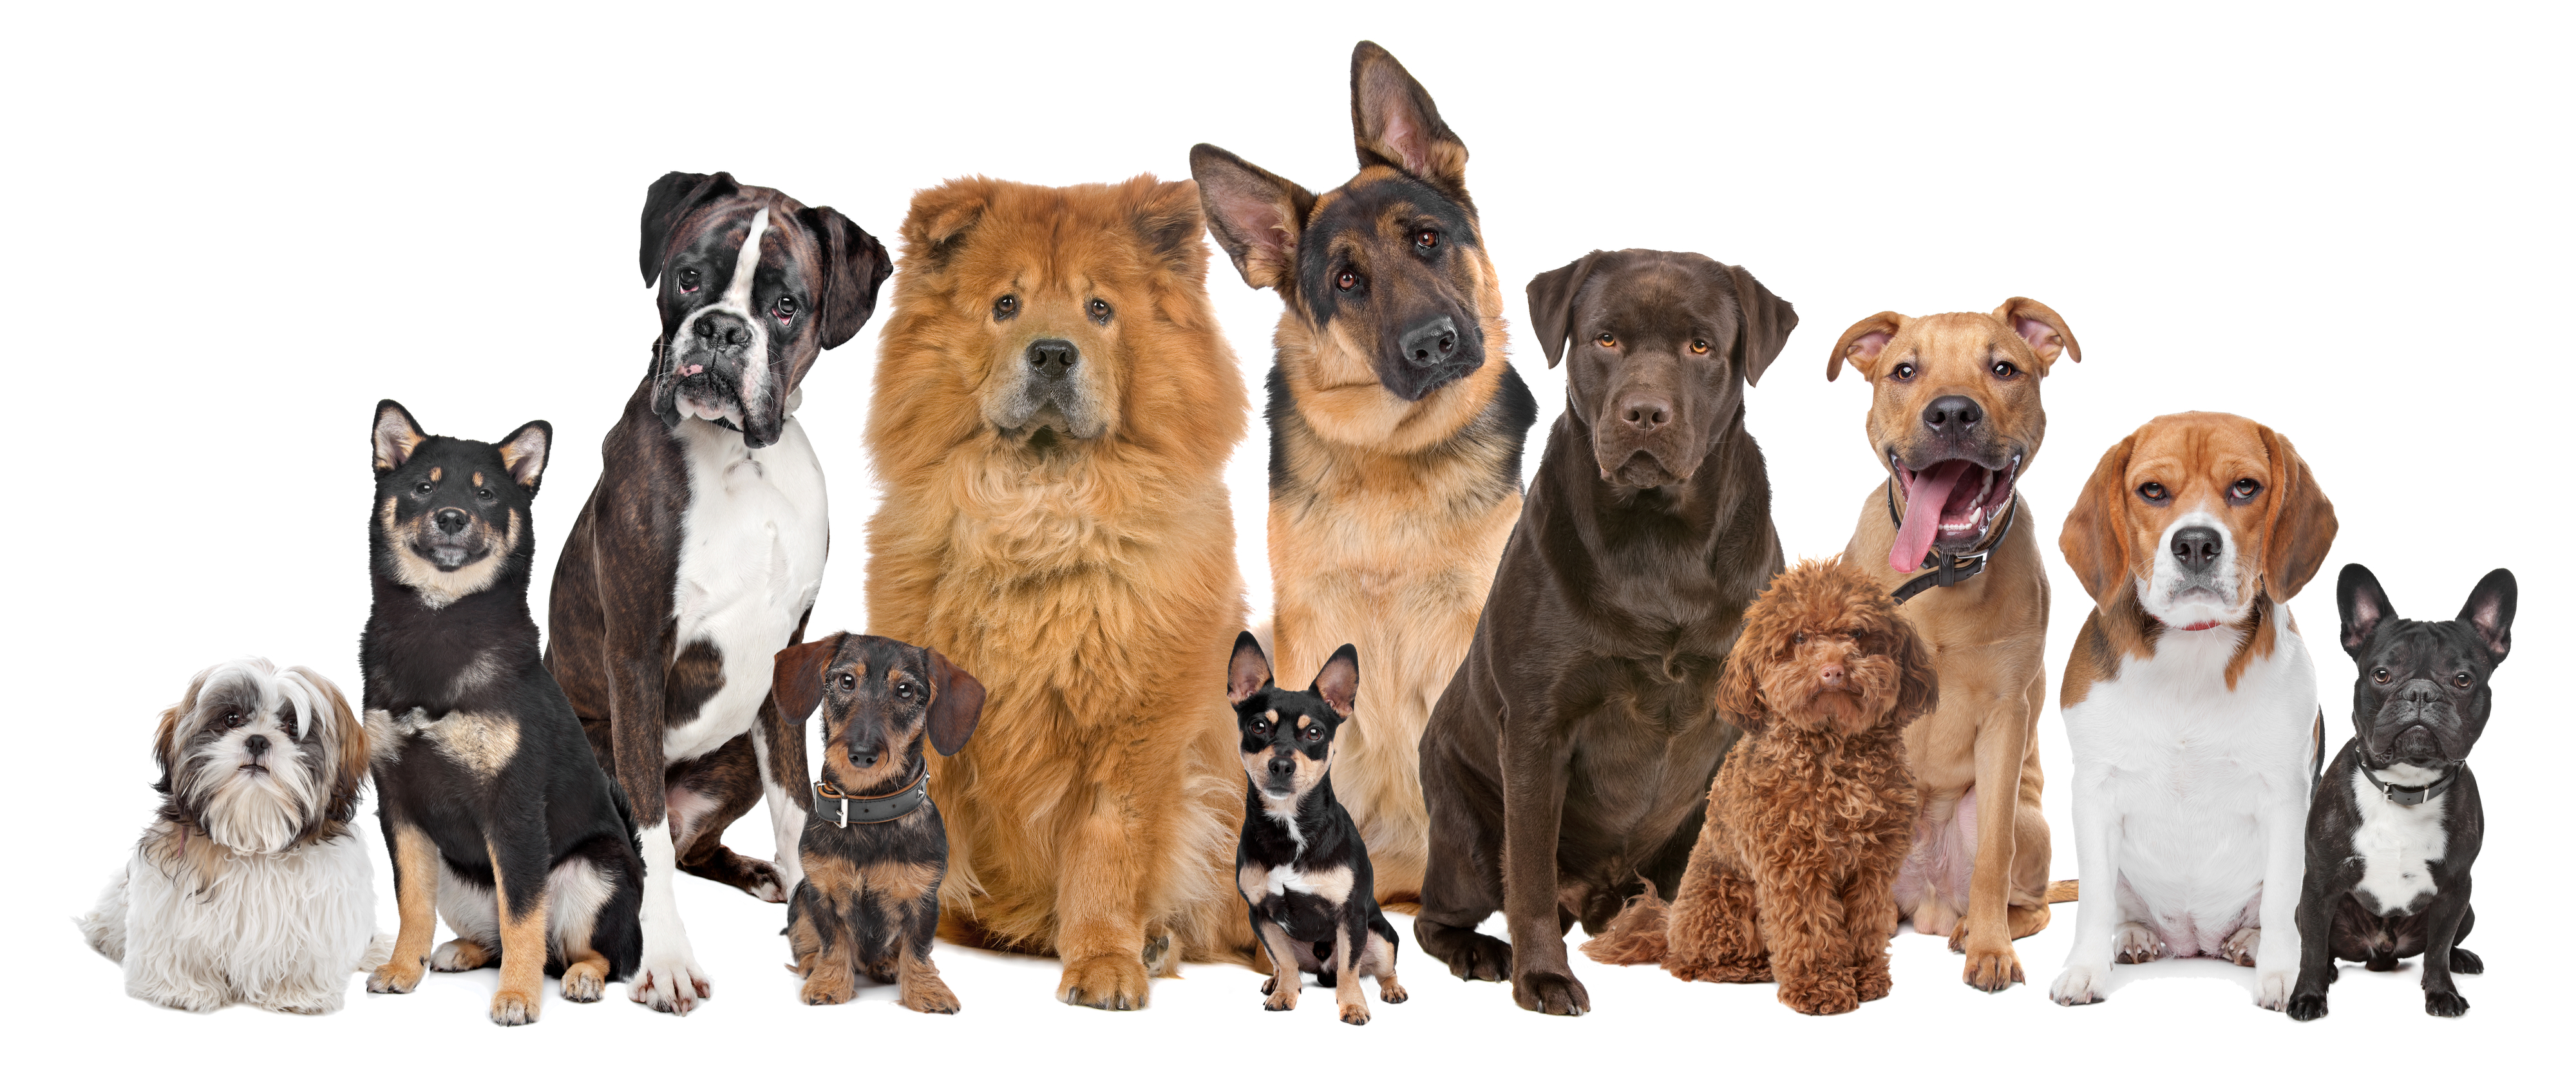 Dogs-group-obedience-ancestors-72ppi